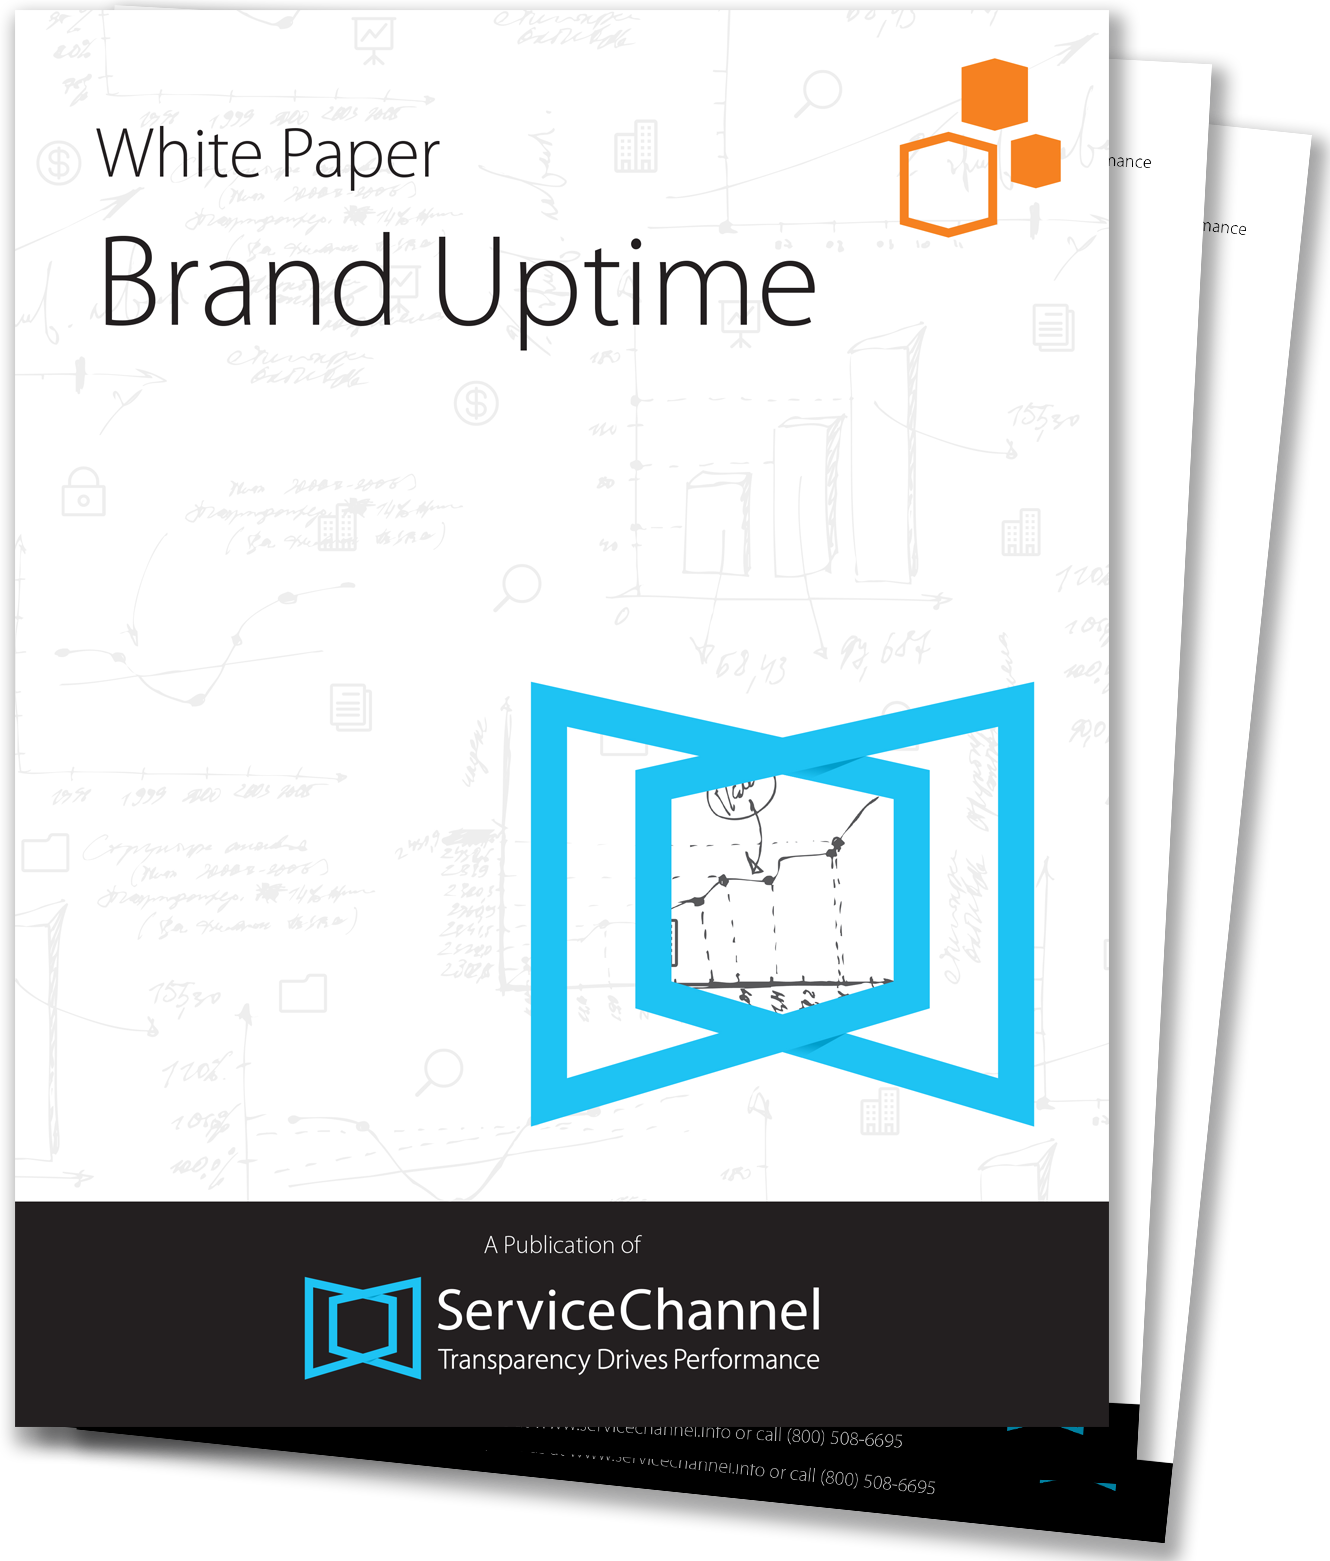 Brand_Uptime_White_Paper_Cover.png